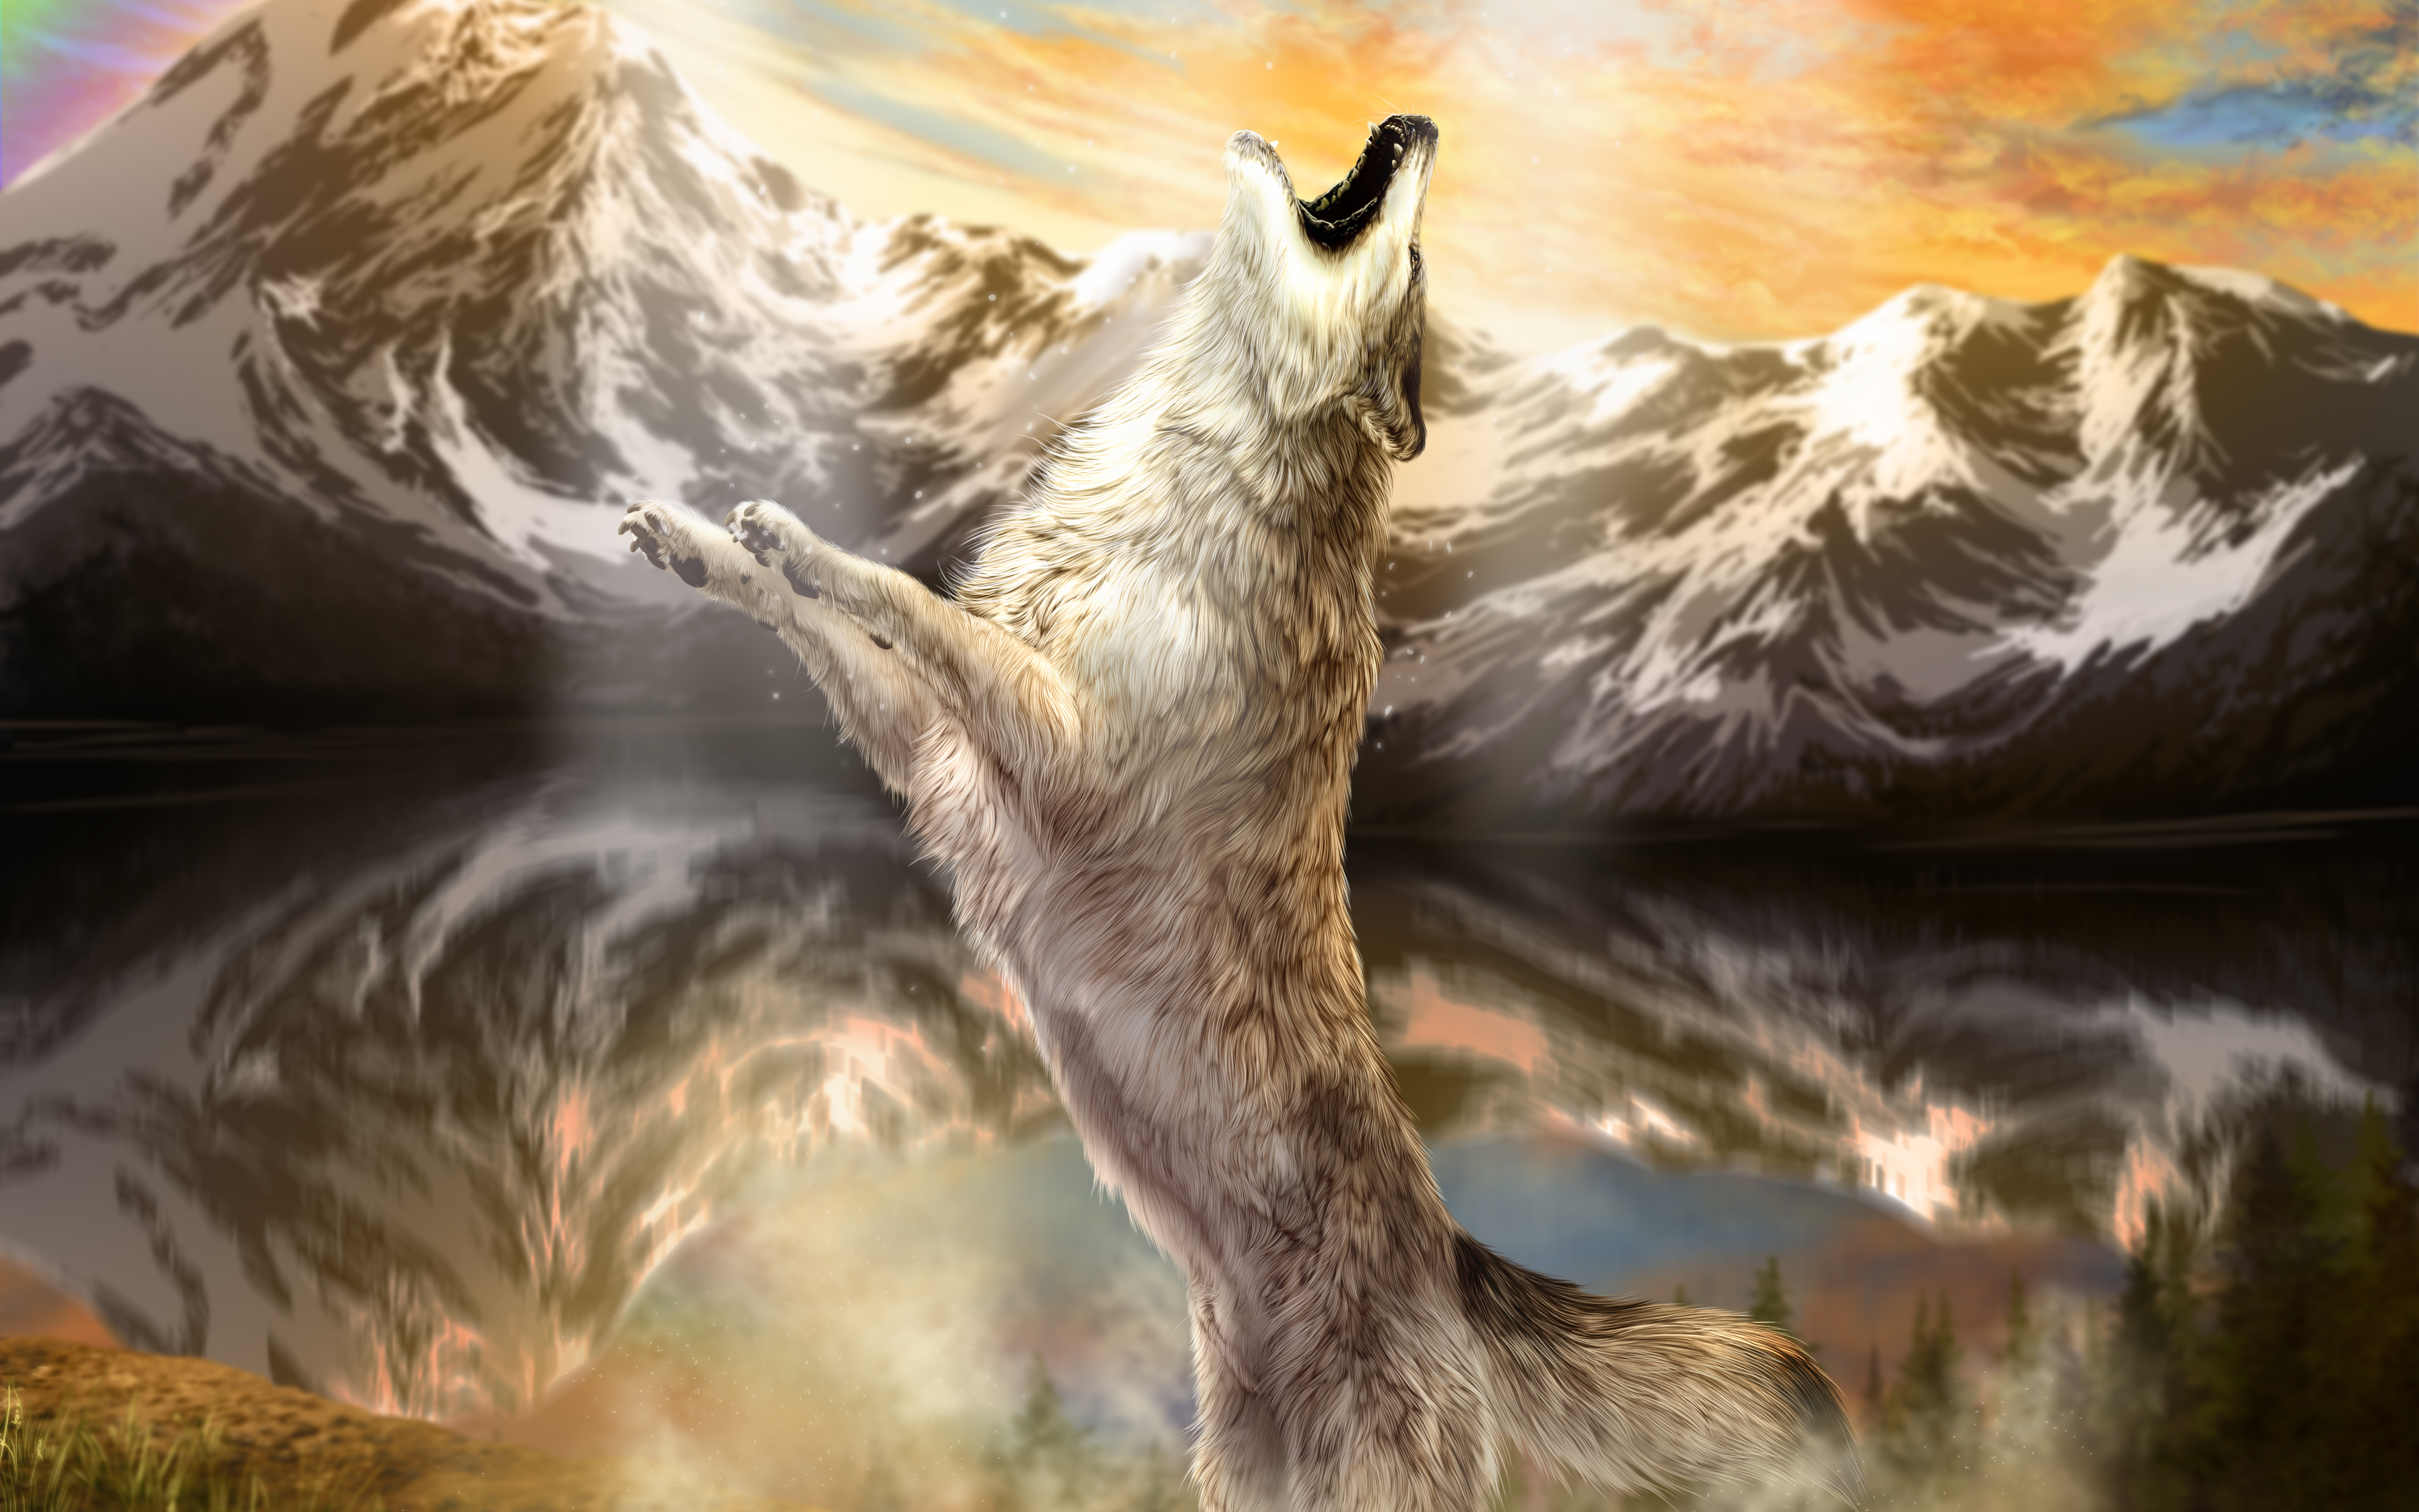 Wolves Mountains Painting Art Animals wolf wallpaper 4500x2813 4500x2813